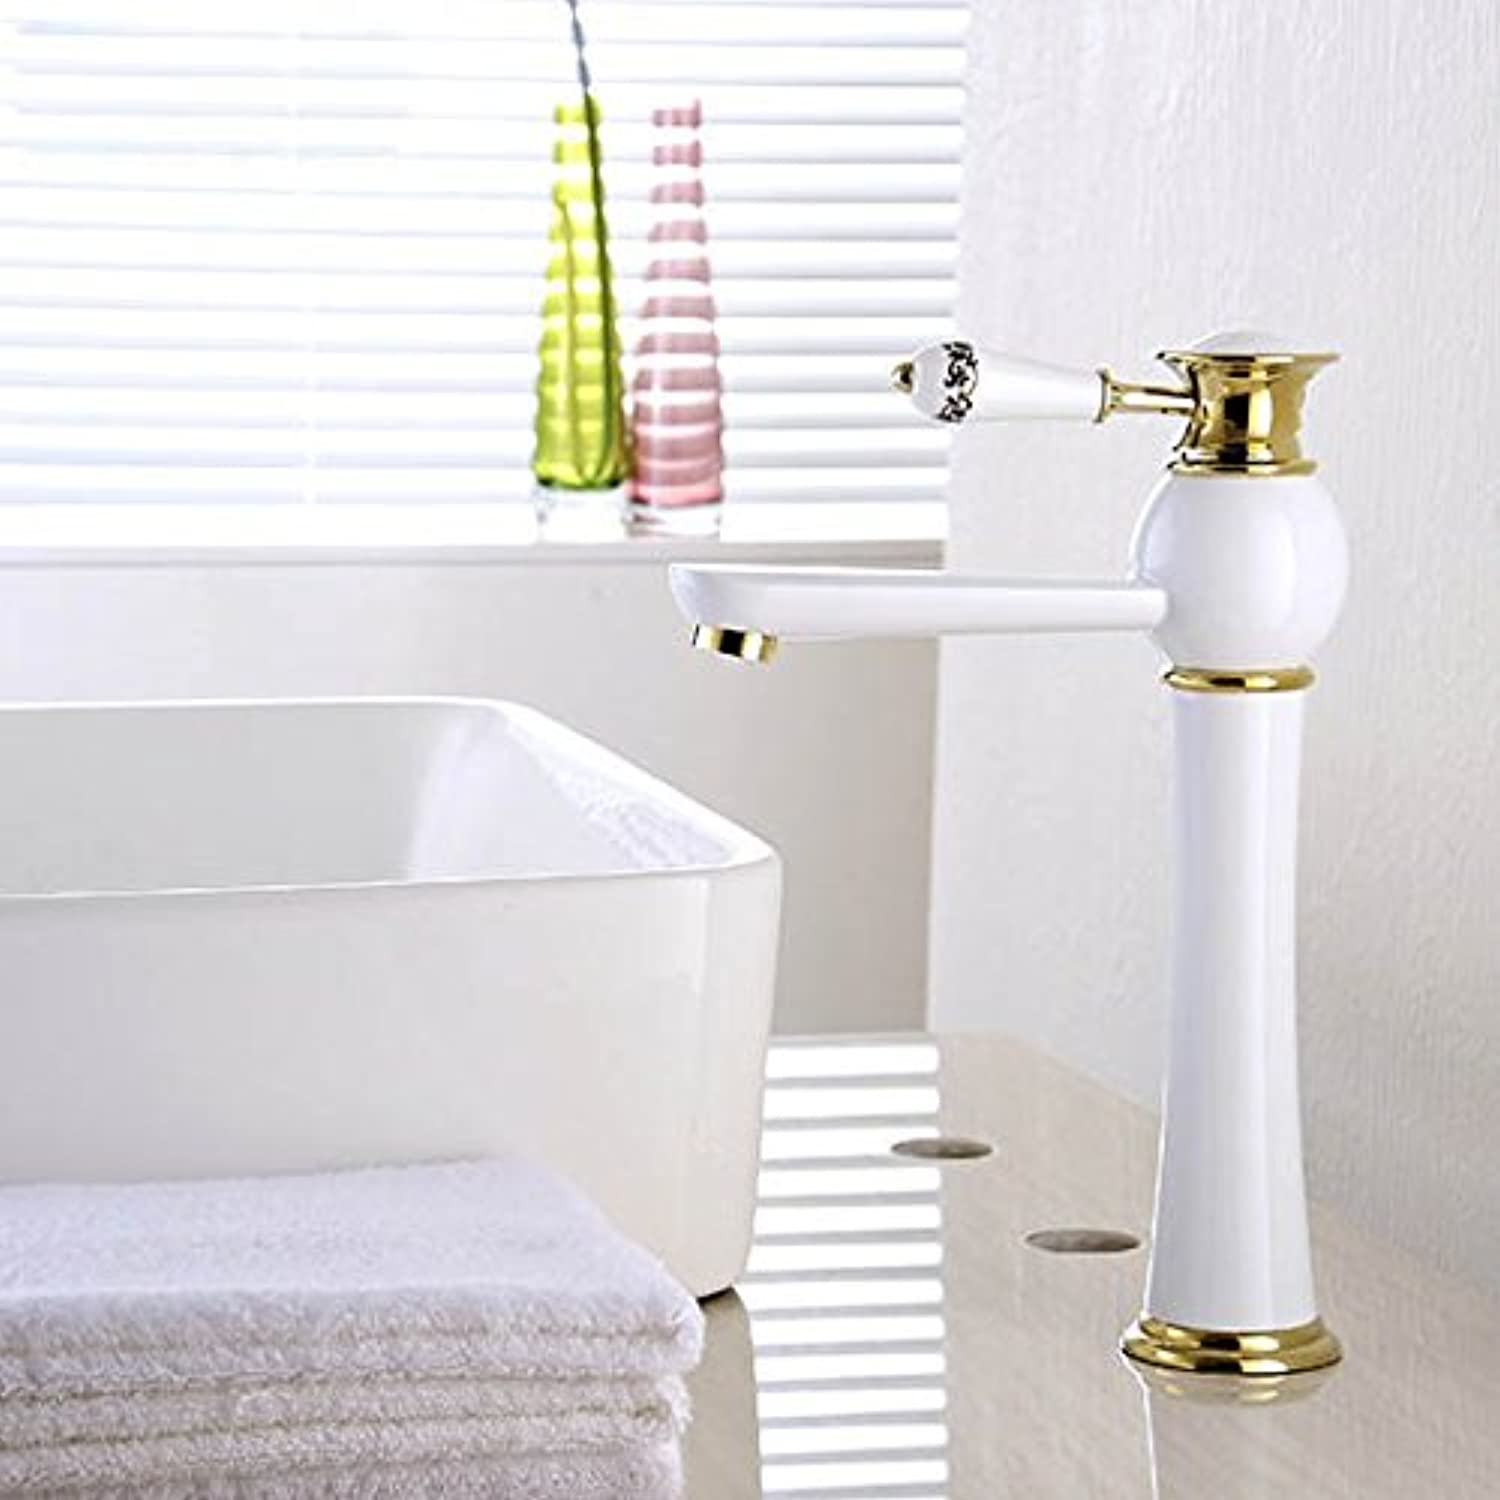 U-Enjoy White and gold Top Quality color Waterfall Faucet Tall Bathroom Faucet Mixer Tap with Hot and Cold Sink Faucet (Free Shipping)